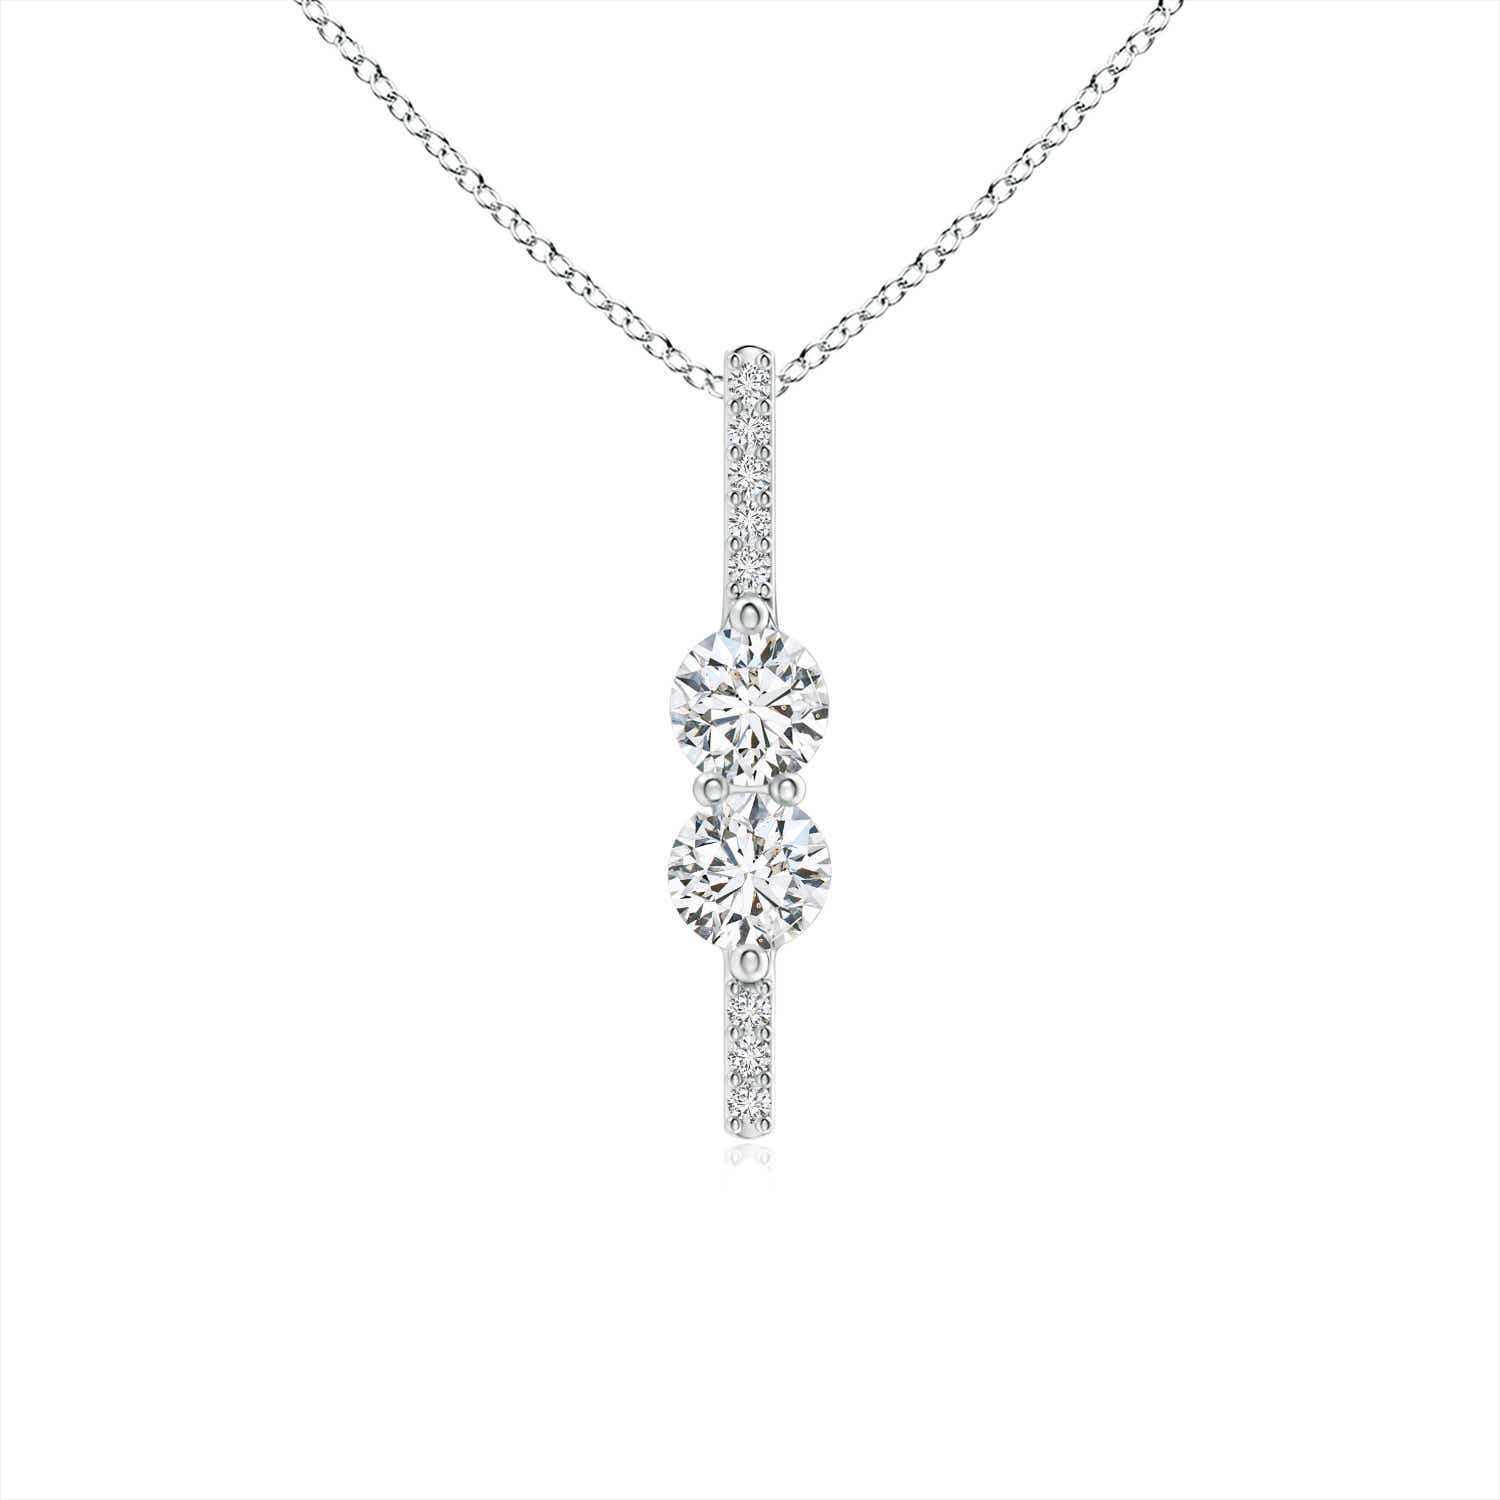 cross pendant diamond necklace forevermark yellowgold jewellery moissanite lugaro